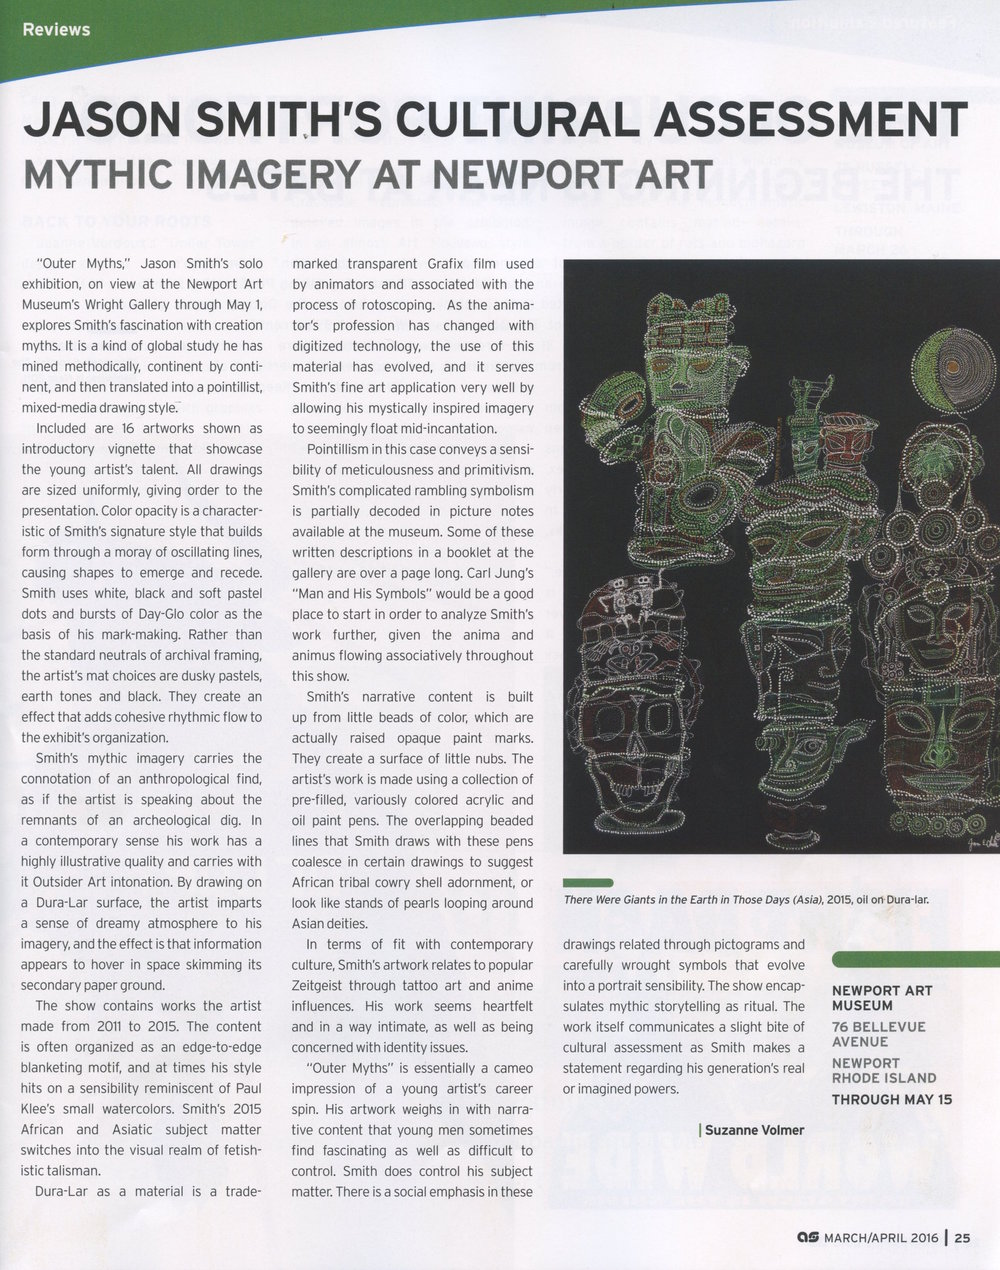 Artscope Magazine April 2016Jason Smith's Cultural assessment at Newport Art